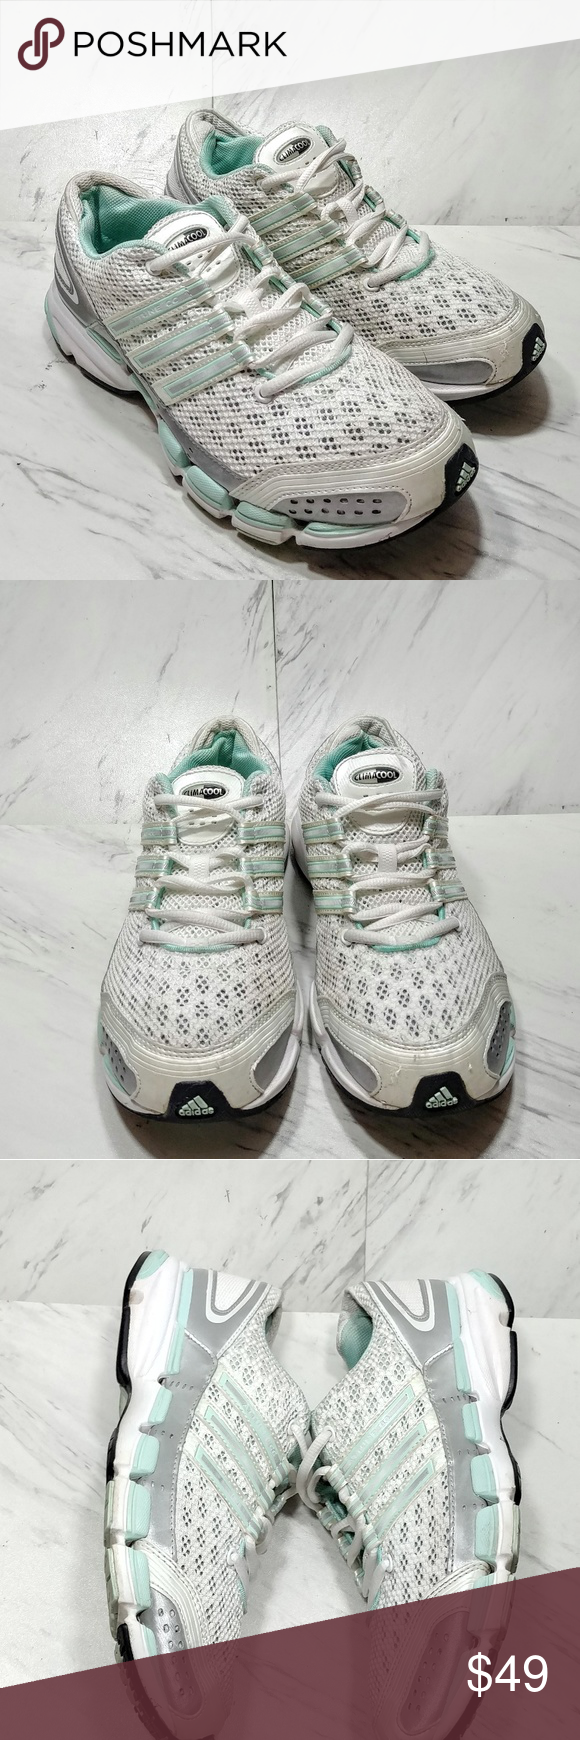 best website 06f88 8b571 Adidas Climacool Sneakers White and mint green. No signs of ...